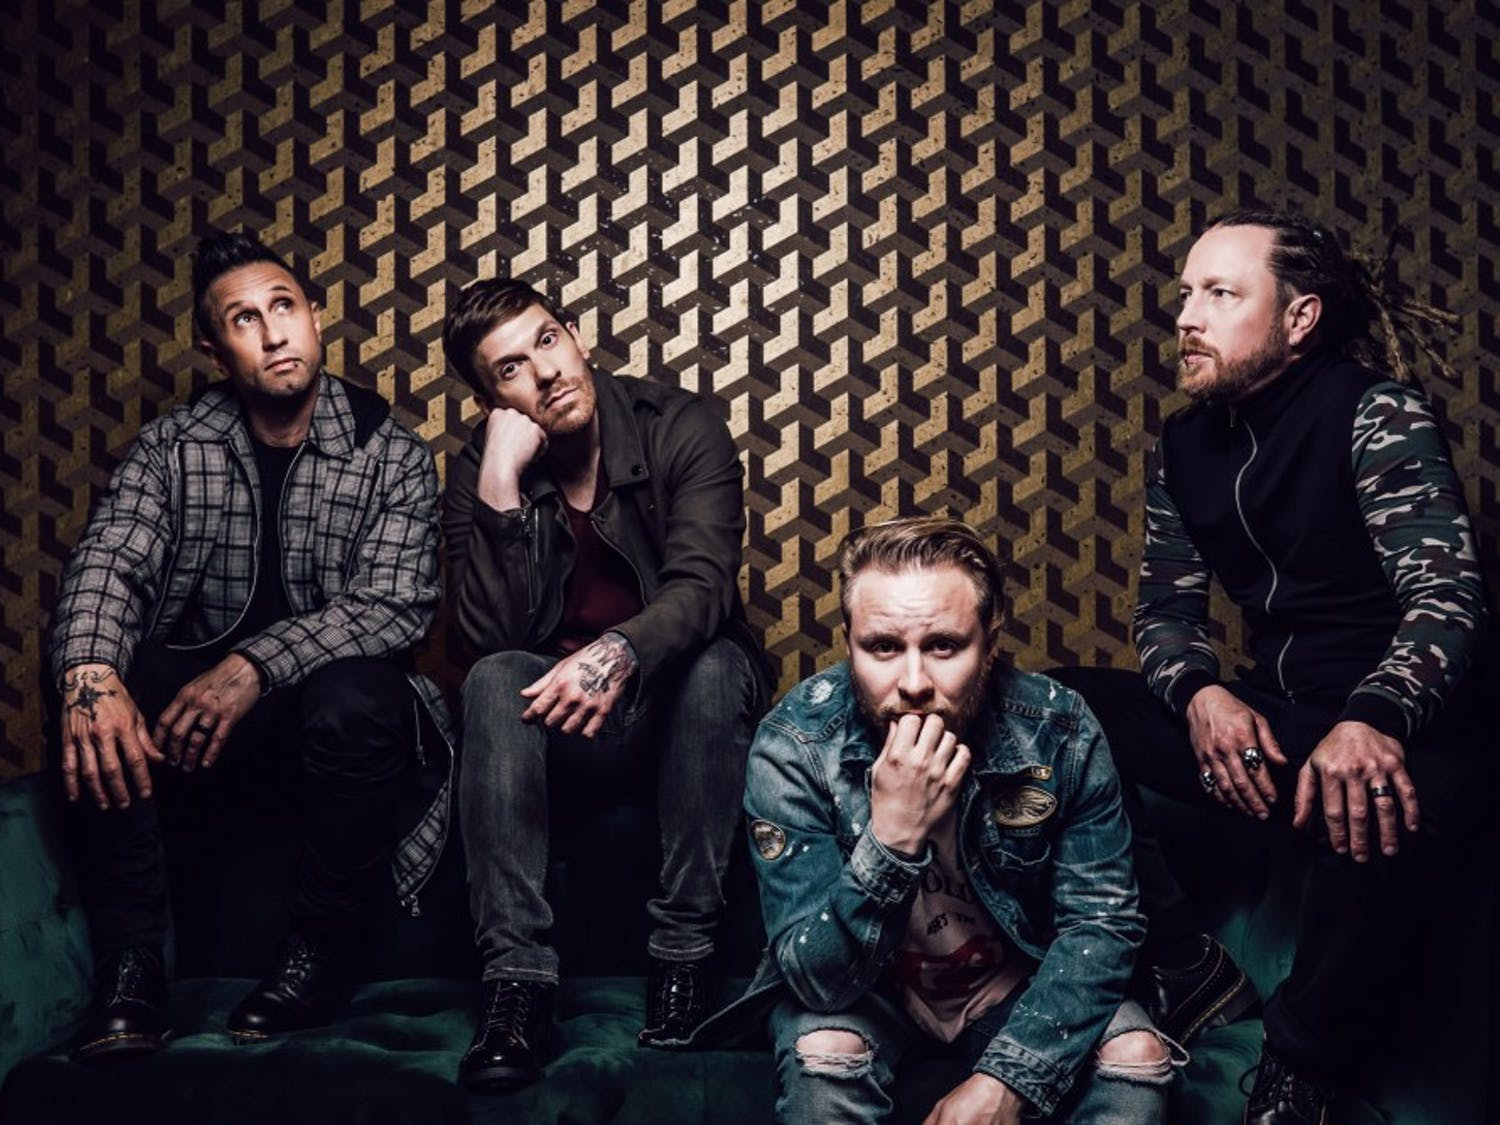 """Shinedown brings their """"Attention Attention World Tour"""" to KeyBank Center on Sept. 27."""